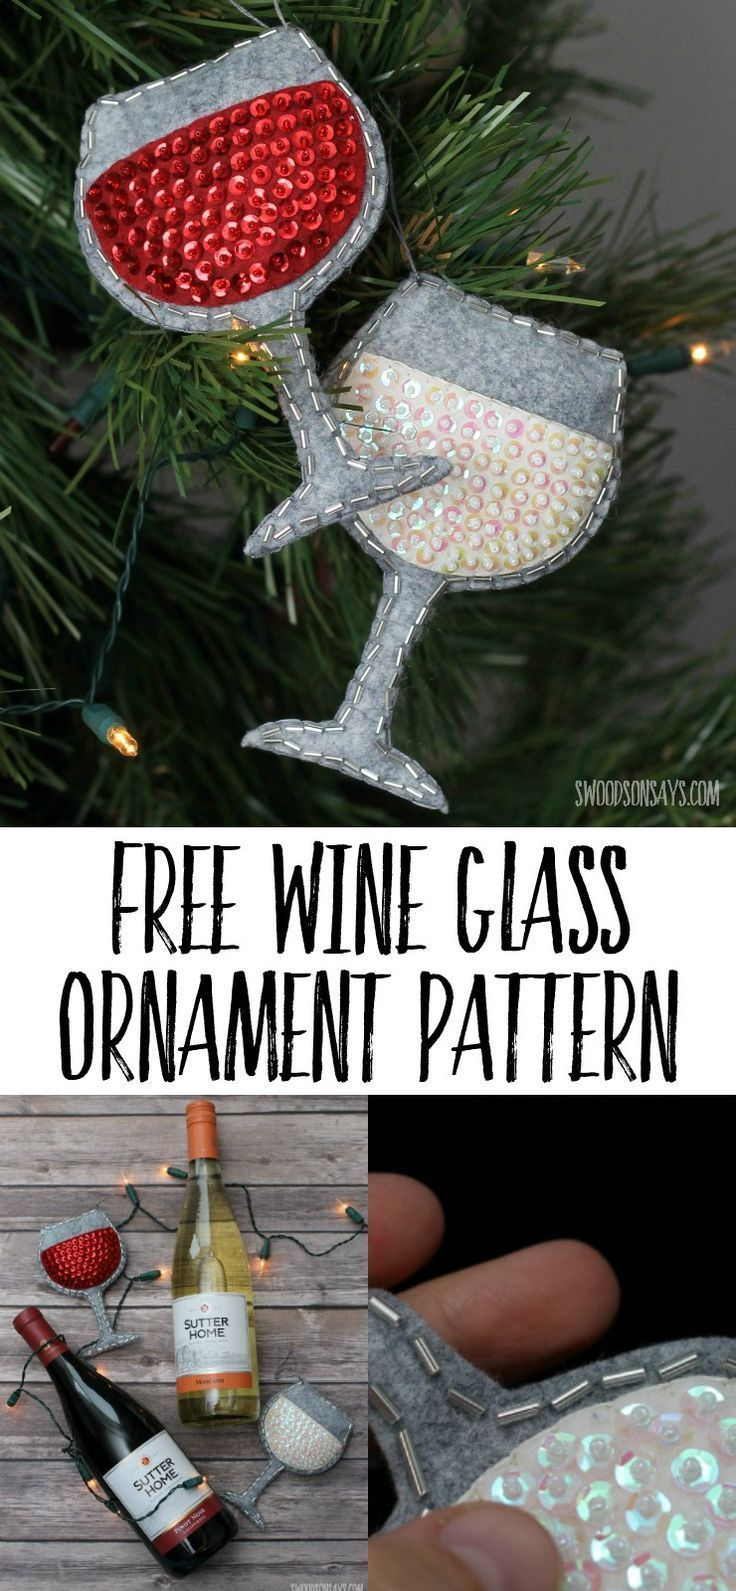 Perfect handmade gift idea for wine lovers - sew up a sequin and felt ornament with this free wine glass ornament sewing pattern! #diychristmasornament #GiftsForWineLovers